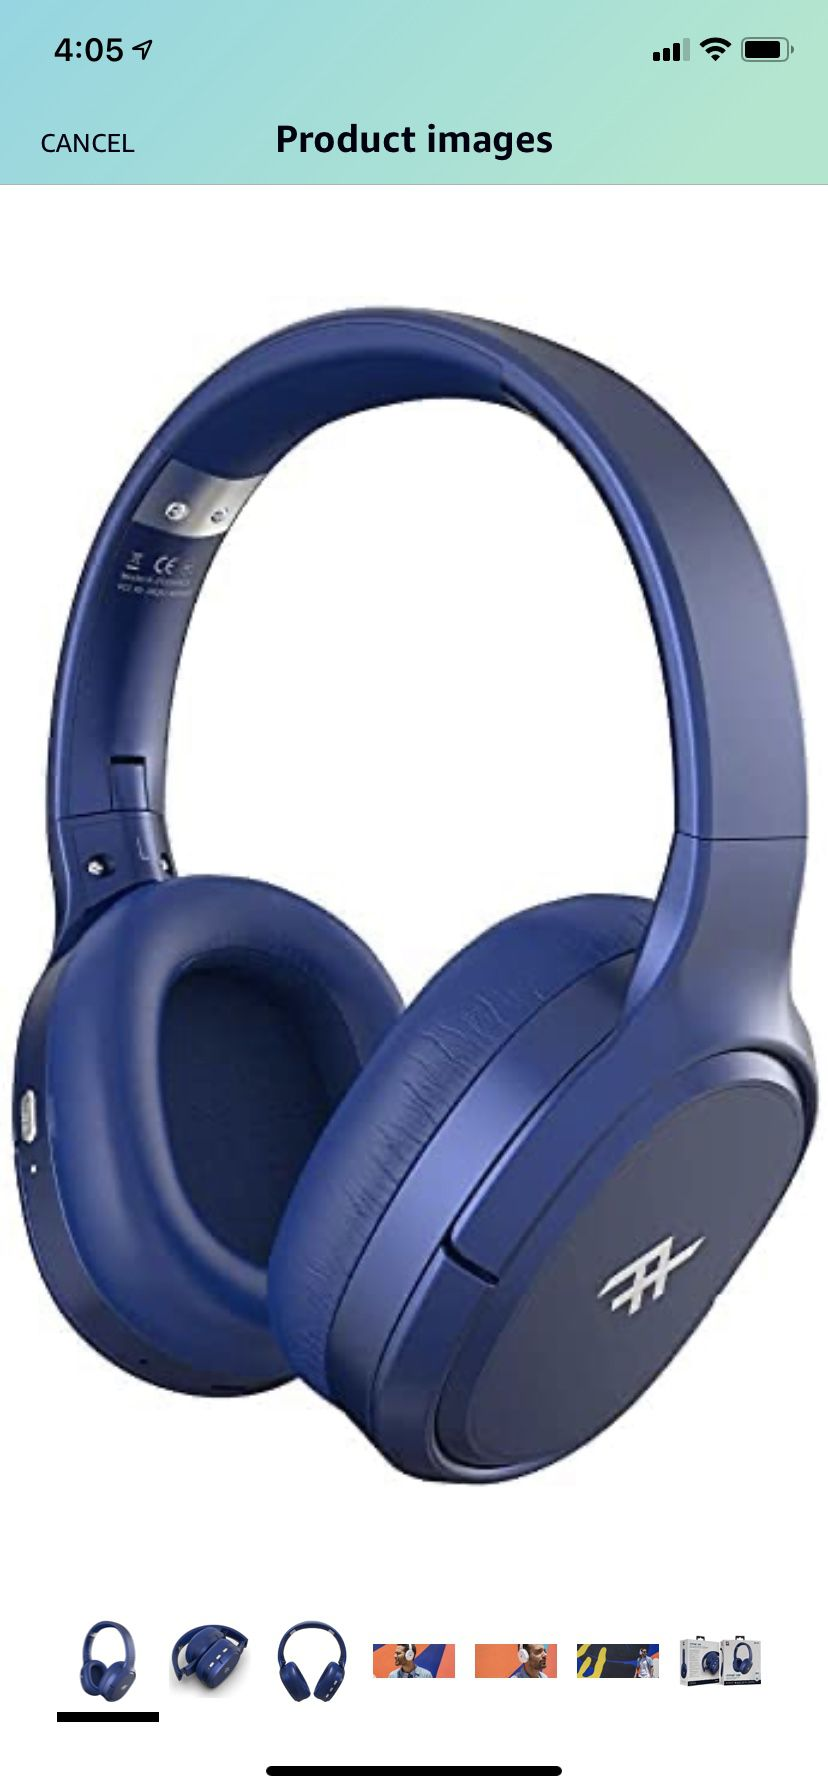 iFrogz AIRTIME VIBE Wireless On-Ear Headphones with Noise-Canceling - Blue